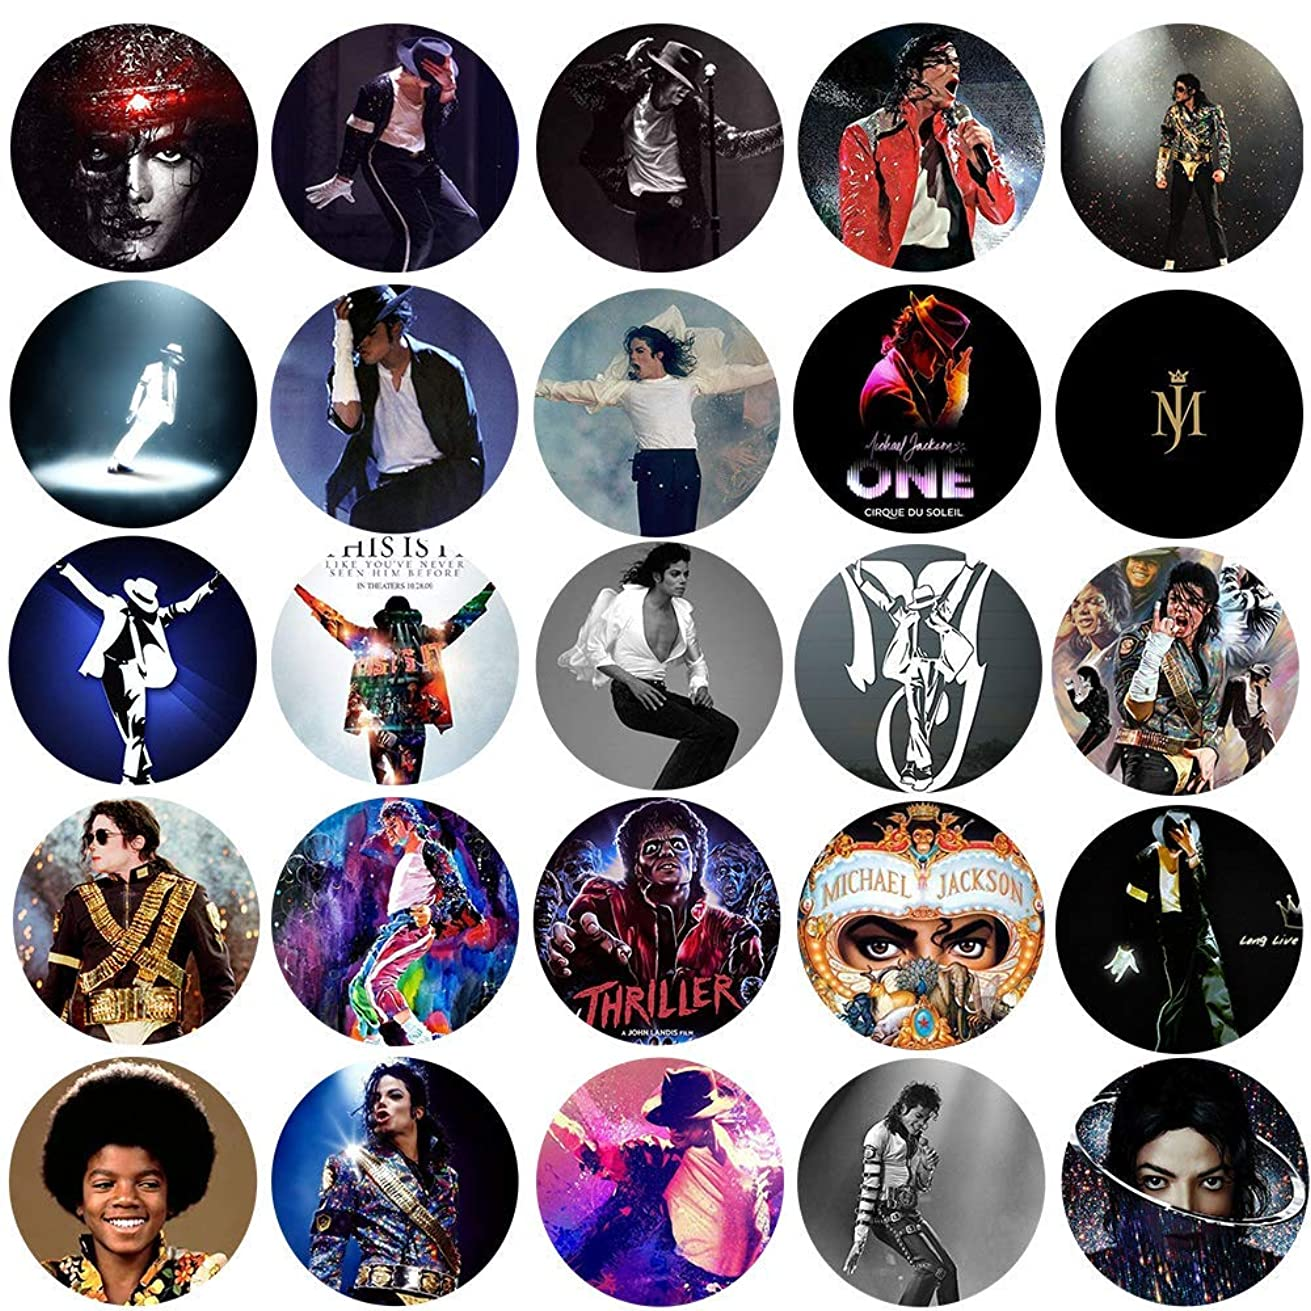 UniqueNO1 The Bigger Vivider Badge Button Pin Pinback Button for Michael Jackson Fans 1.75inch Pack of 25